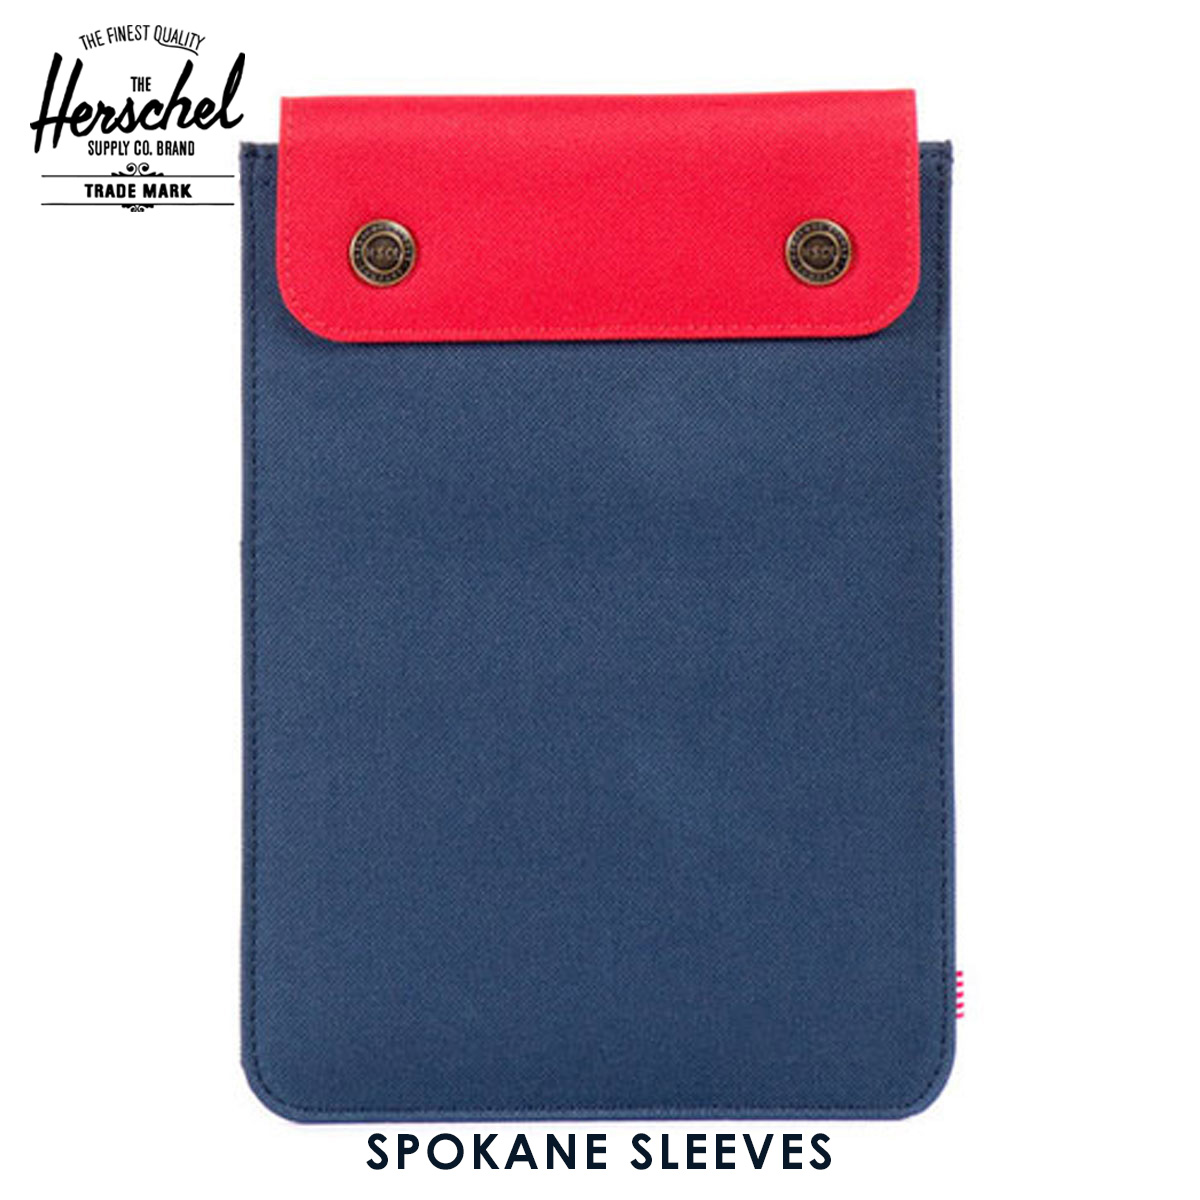 ハーシェル タブレットケース 正規販売店 Herschel Supply ハーシェルサプライ iPad Mini ケース Spokane Sleeve for iPad Mini Sleeves 10191-00018-OS Navy/Red A52B B3C C3D D0E E06F